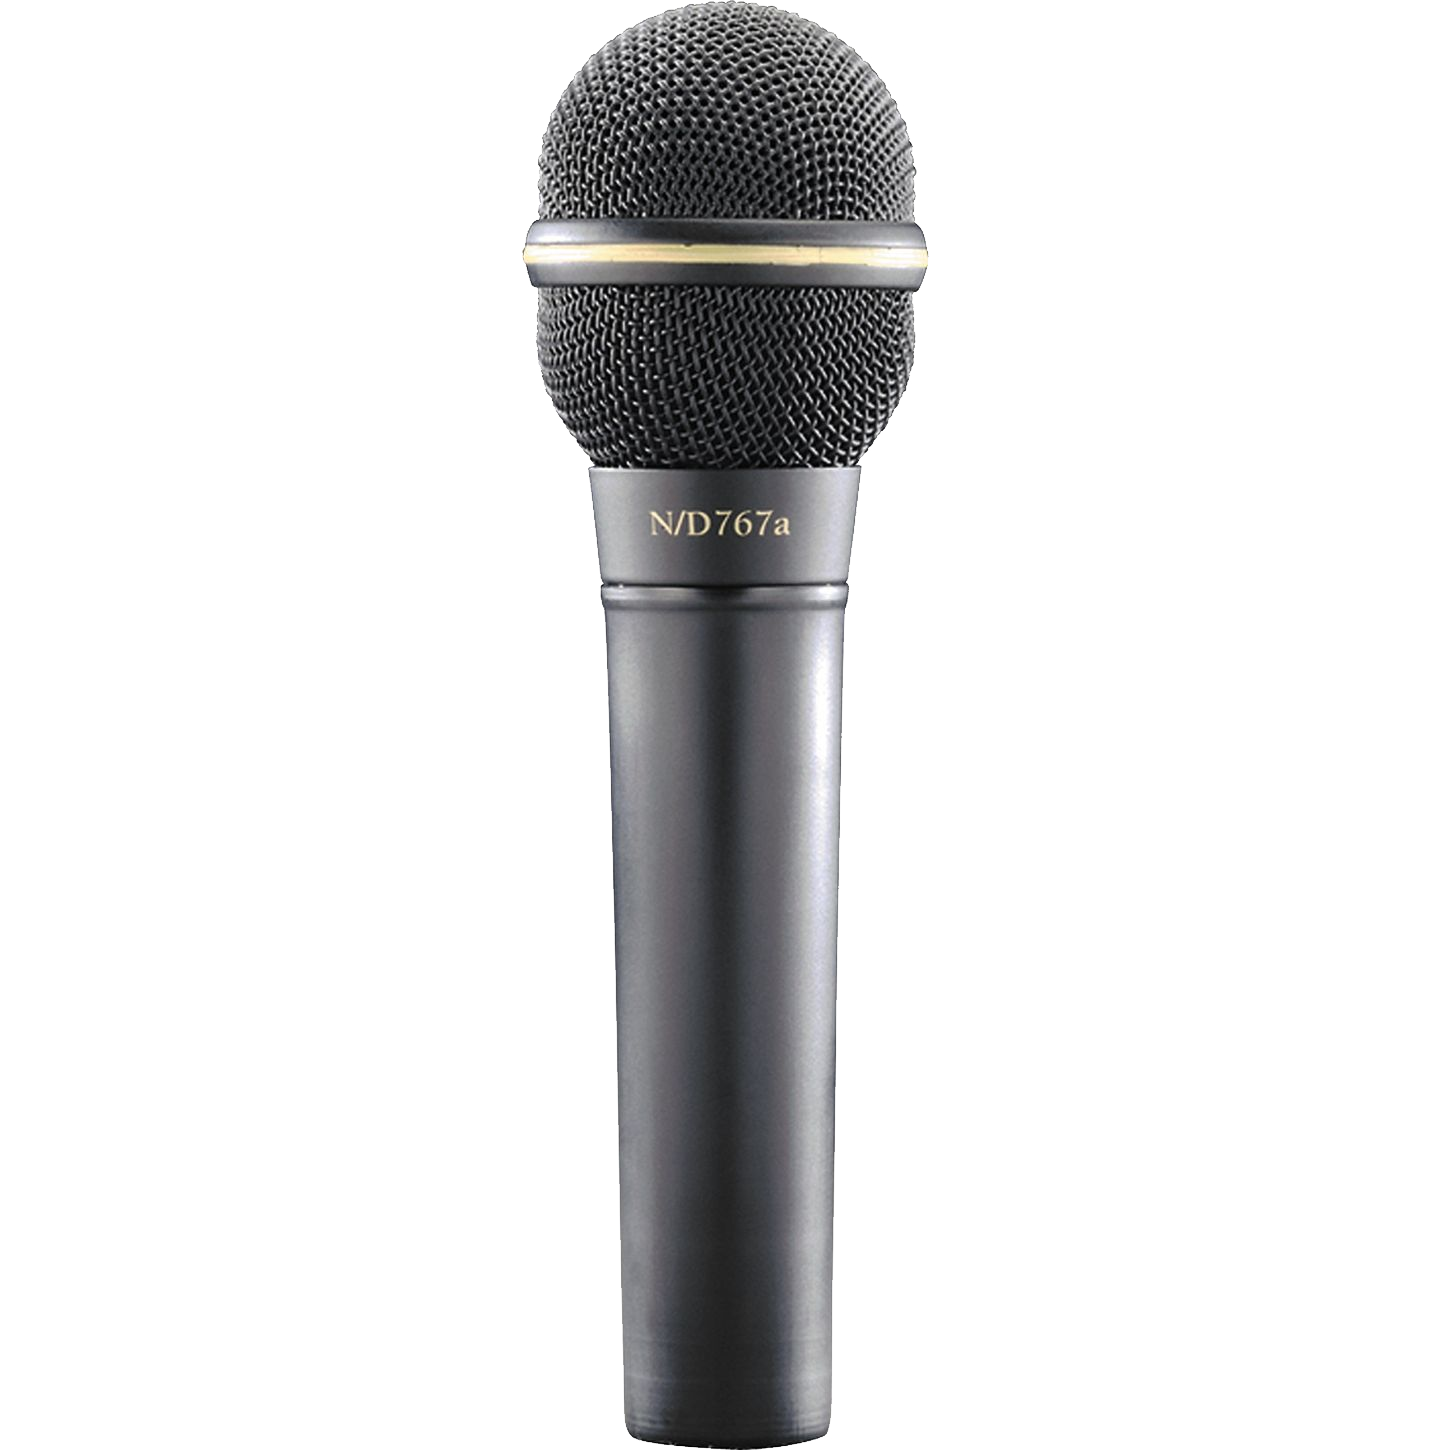 Png image . Microphone clipart condenser microphone